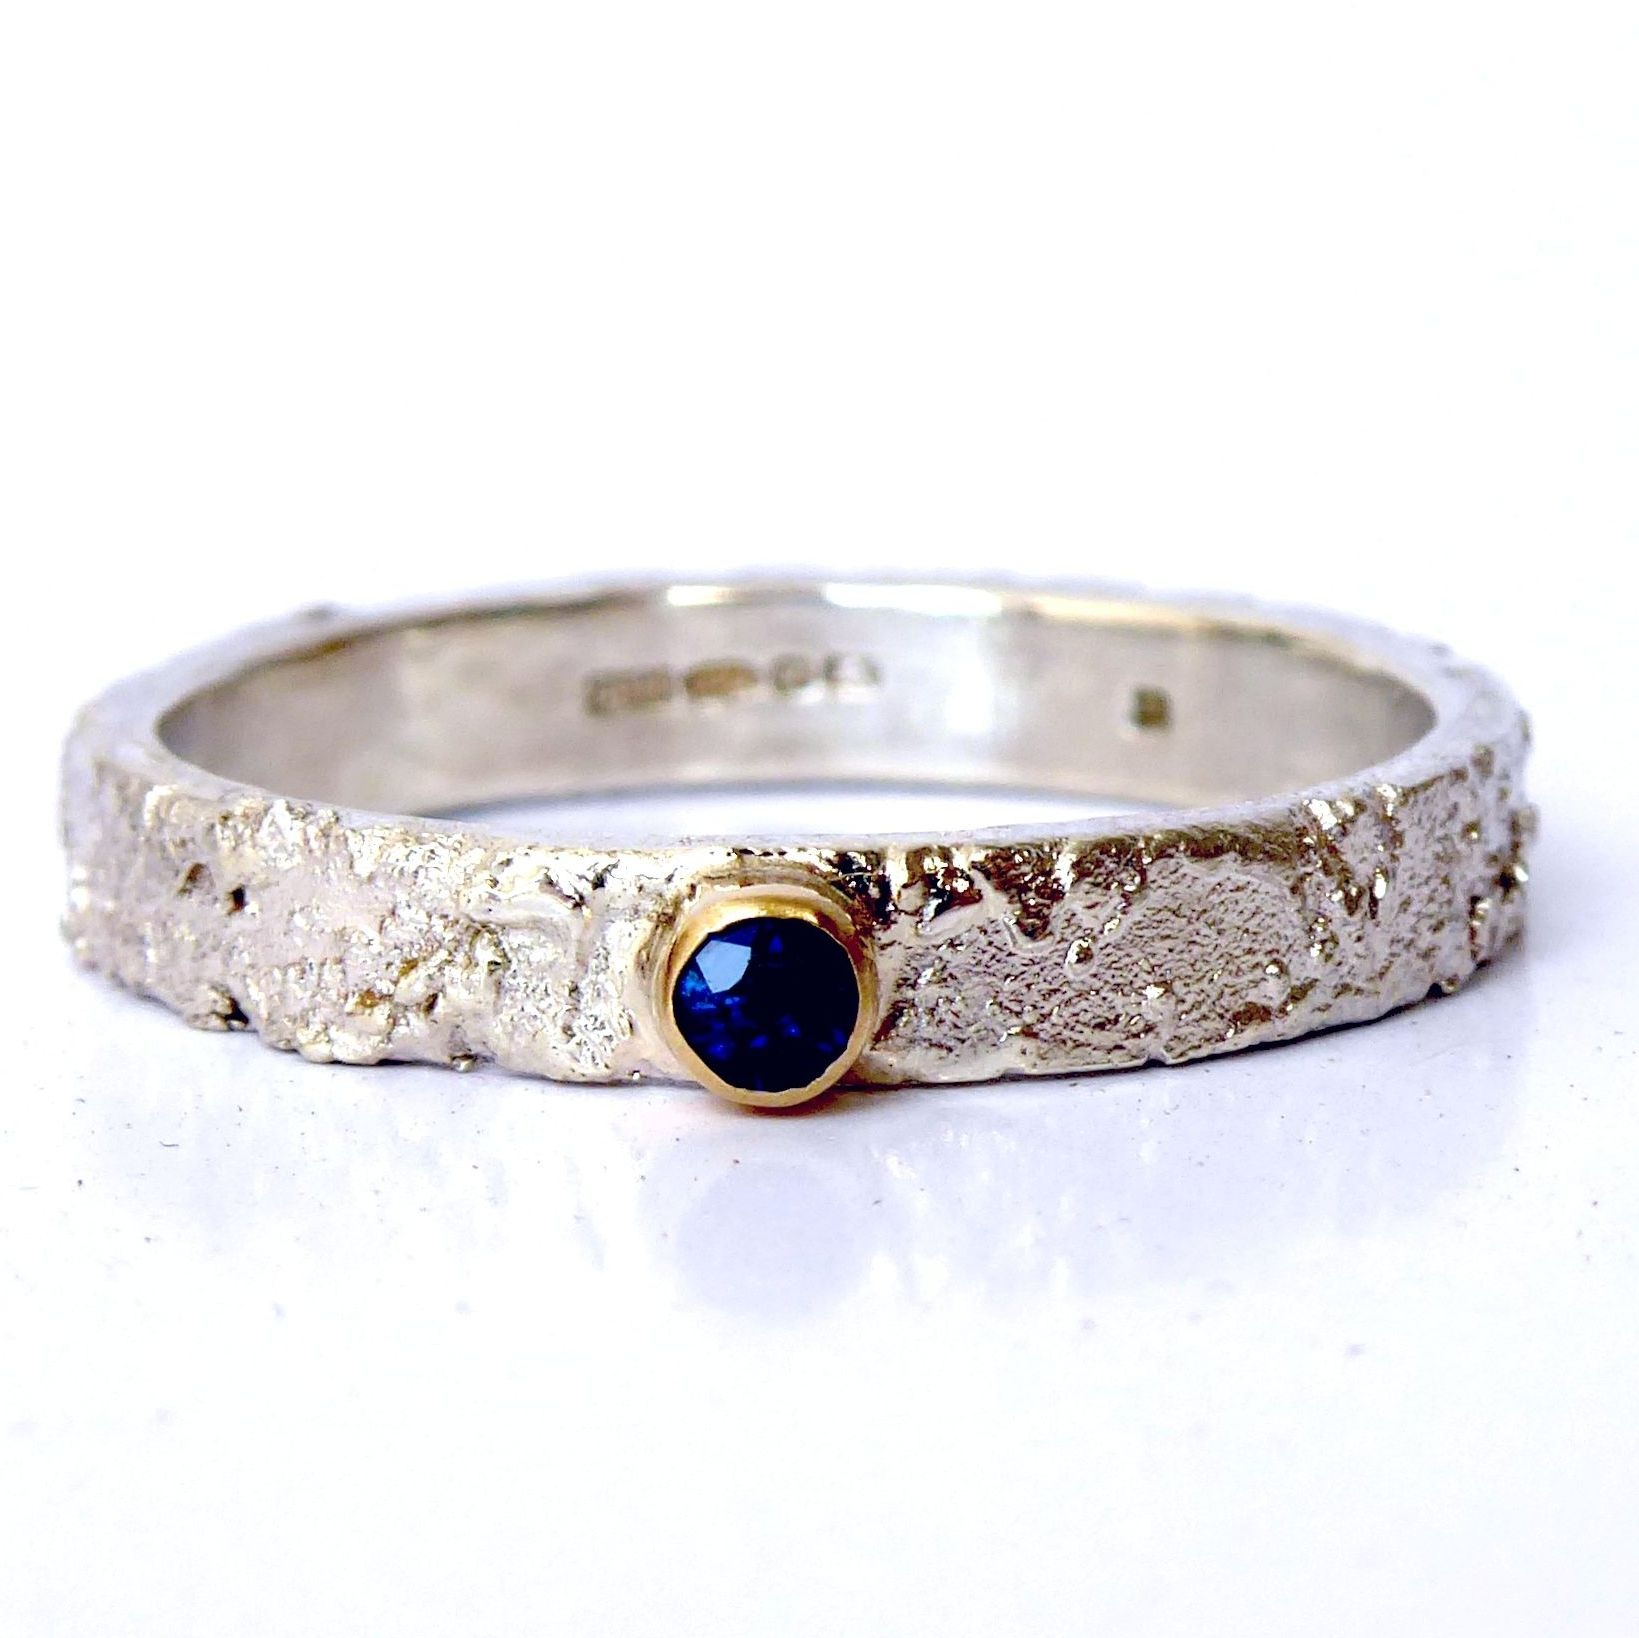 Unusual textured sapphire, silver and gold ring